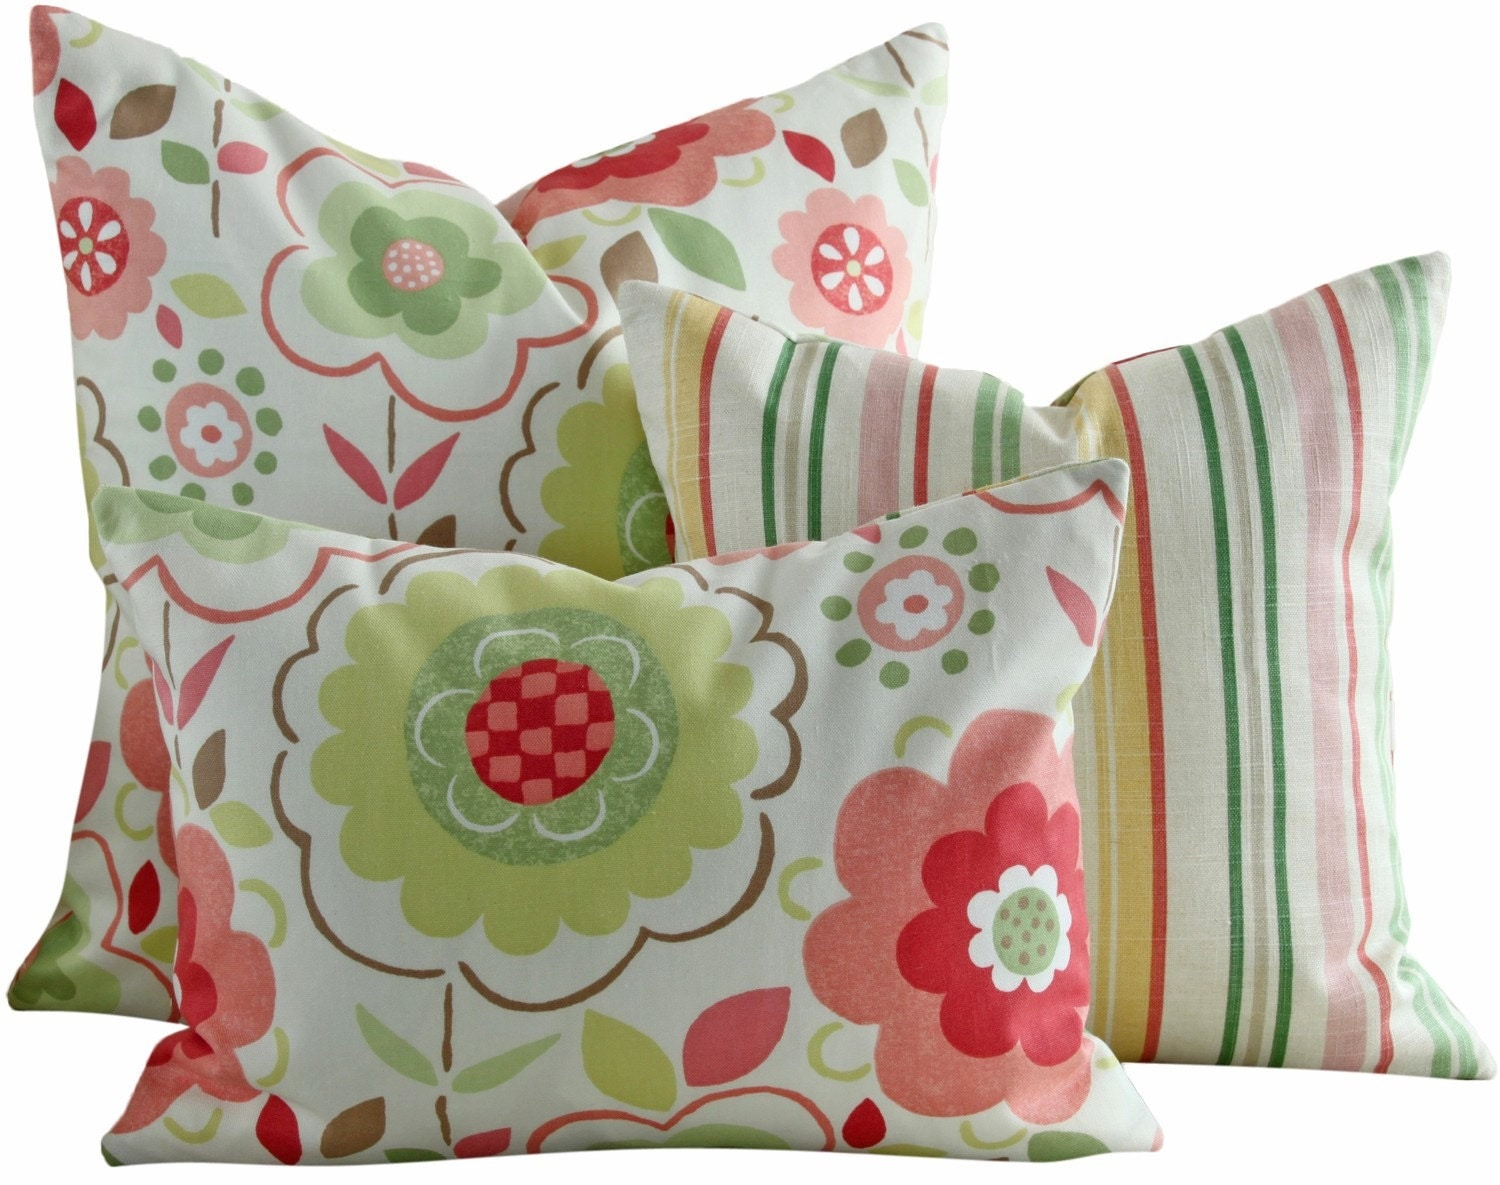 18x18 . Waverly and Waites . Designer Pillow Covers . Pocket Full of Flowers